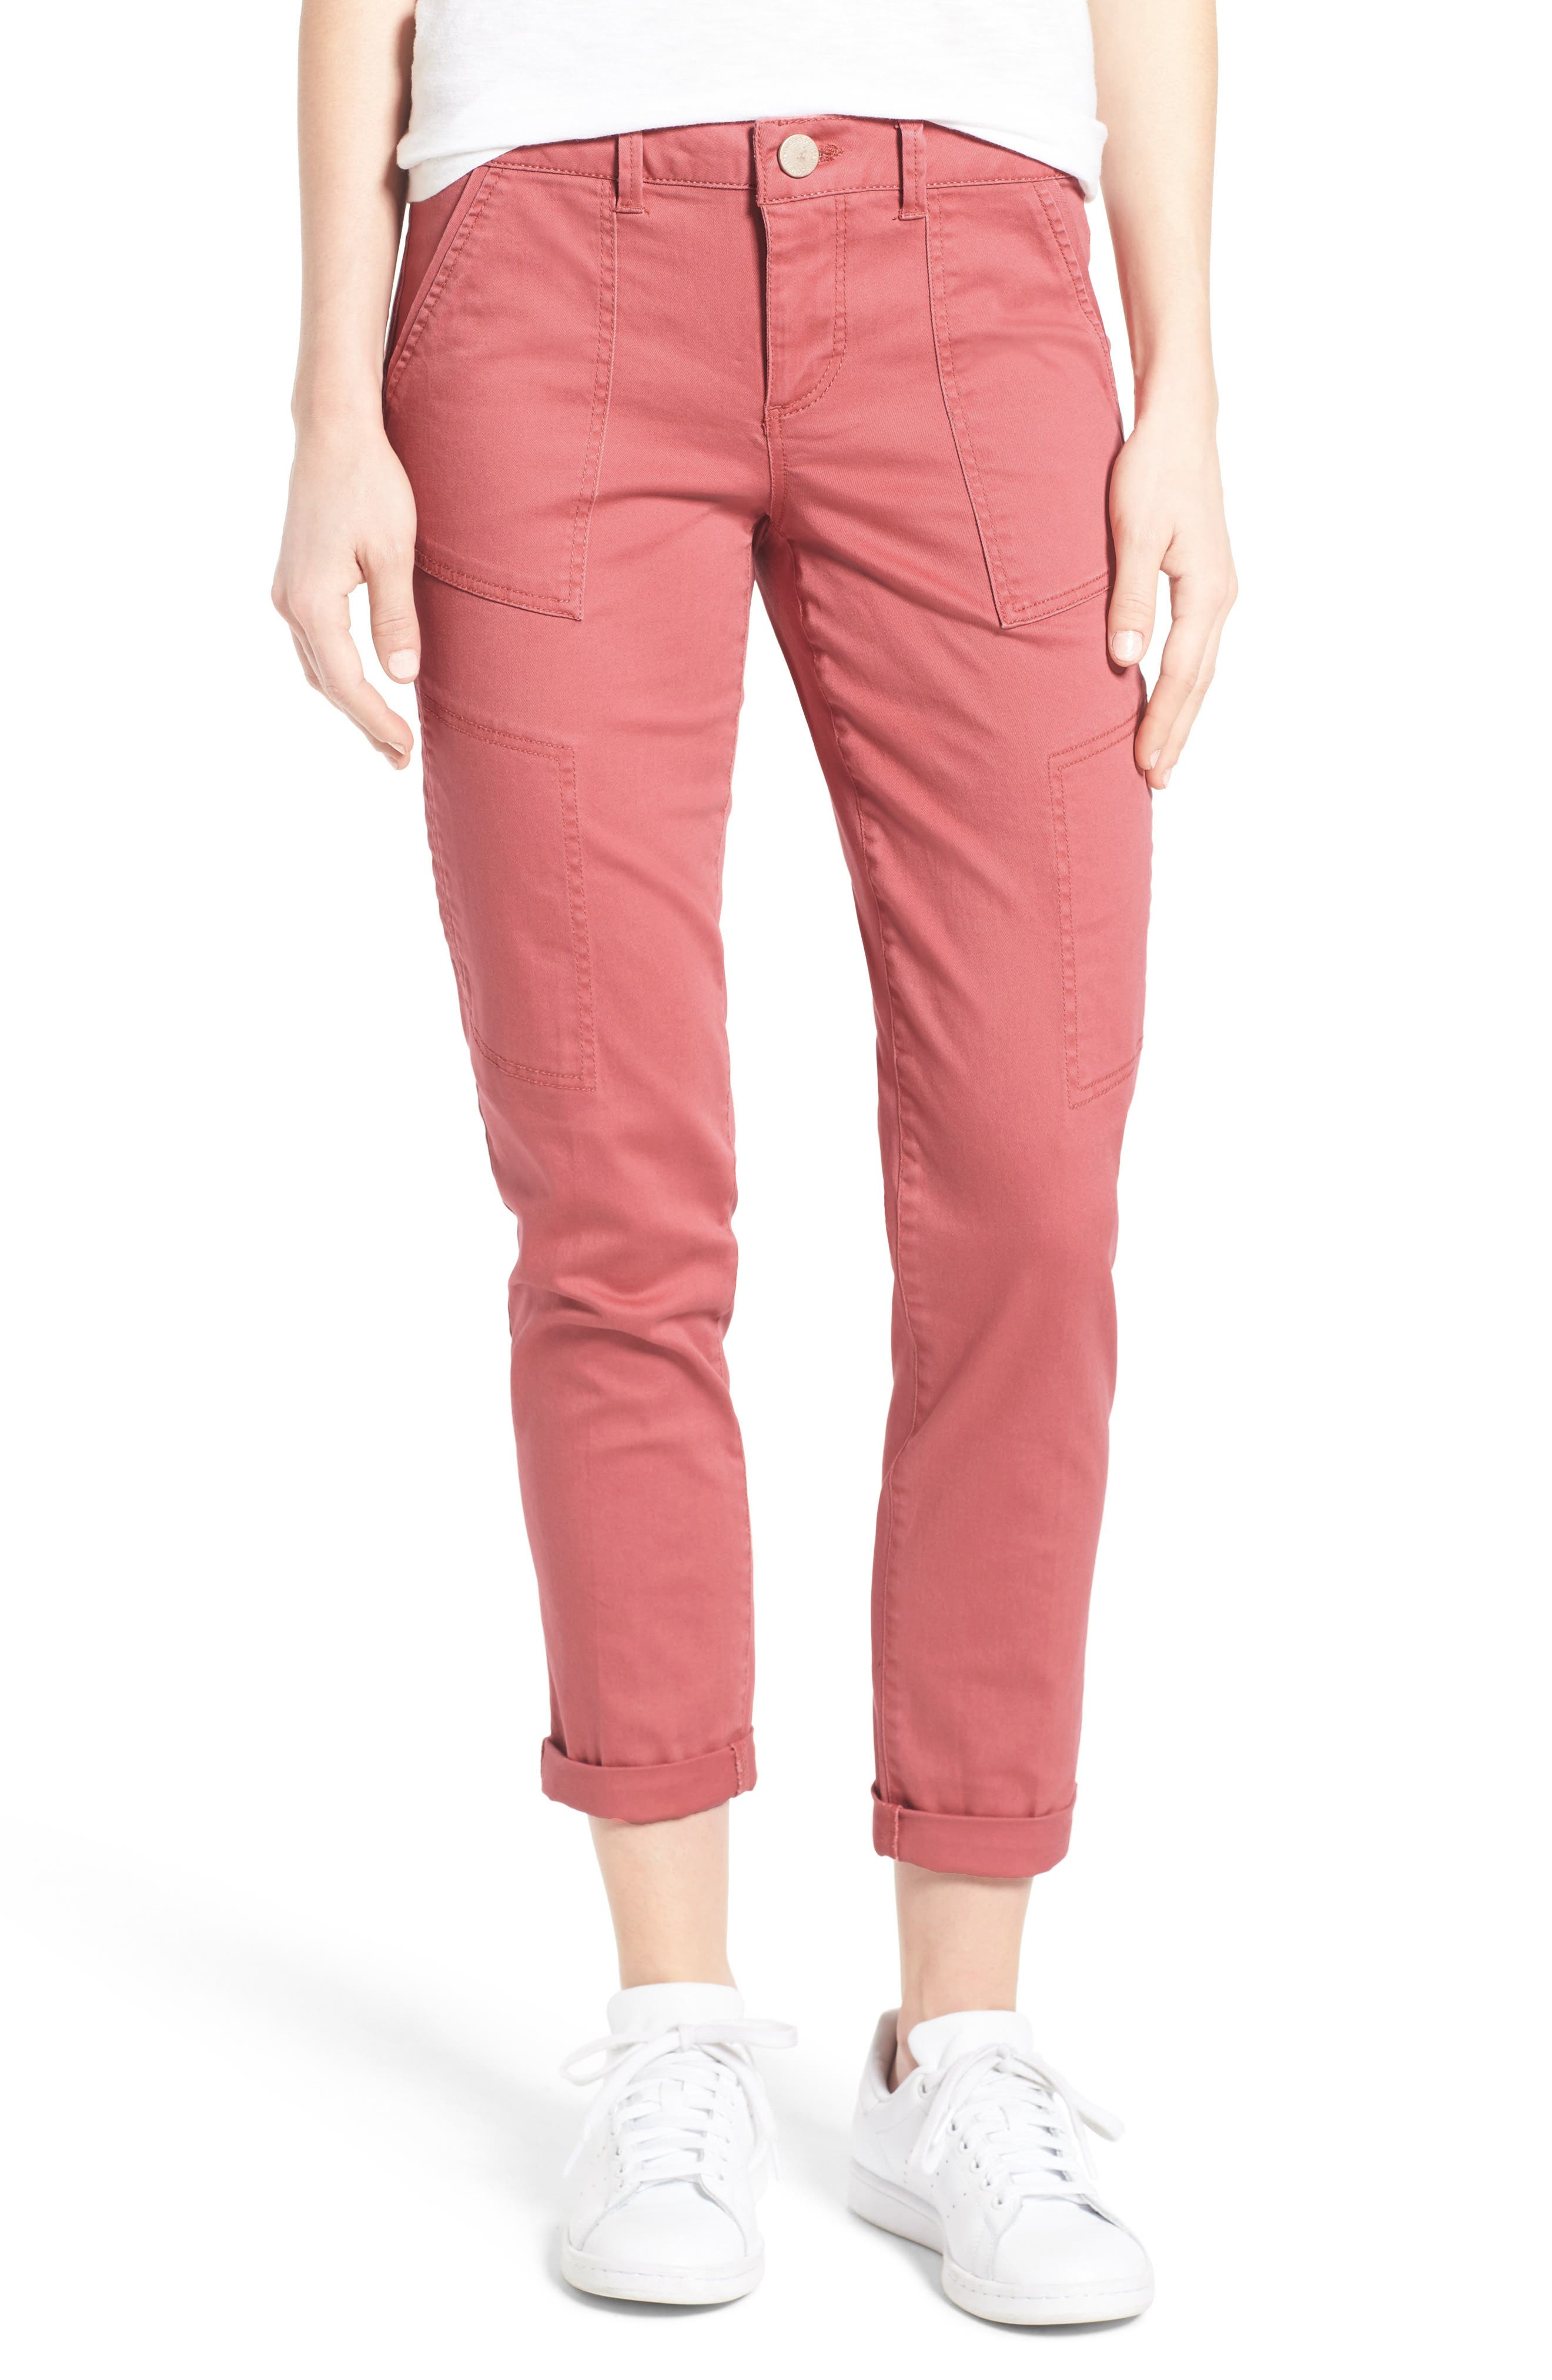 Wit & Wisdom Skinny Cargo Pants (Regular & Petite) (Nordstrom Exclusive)